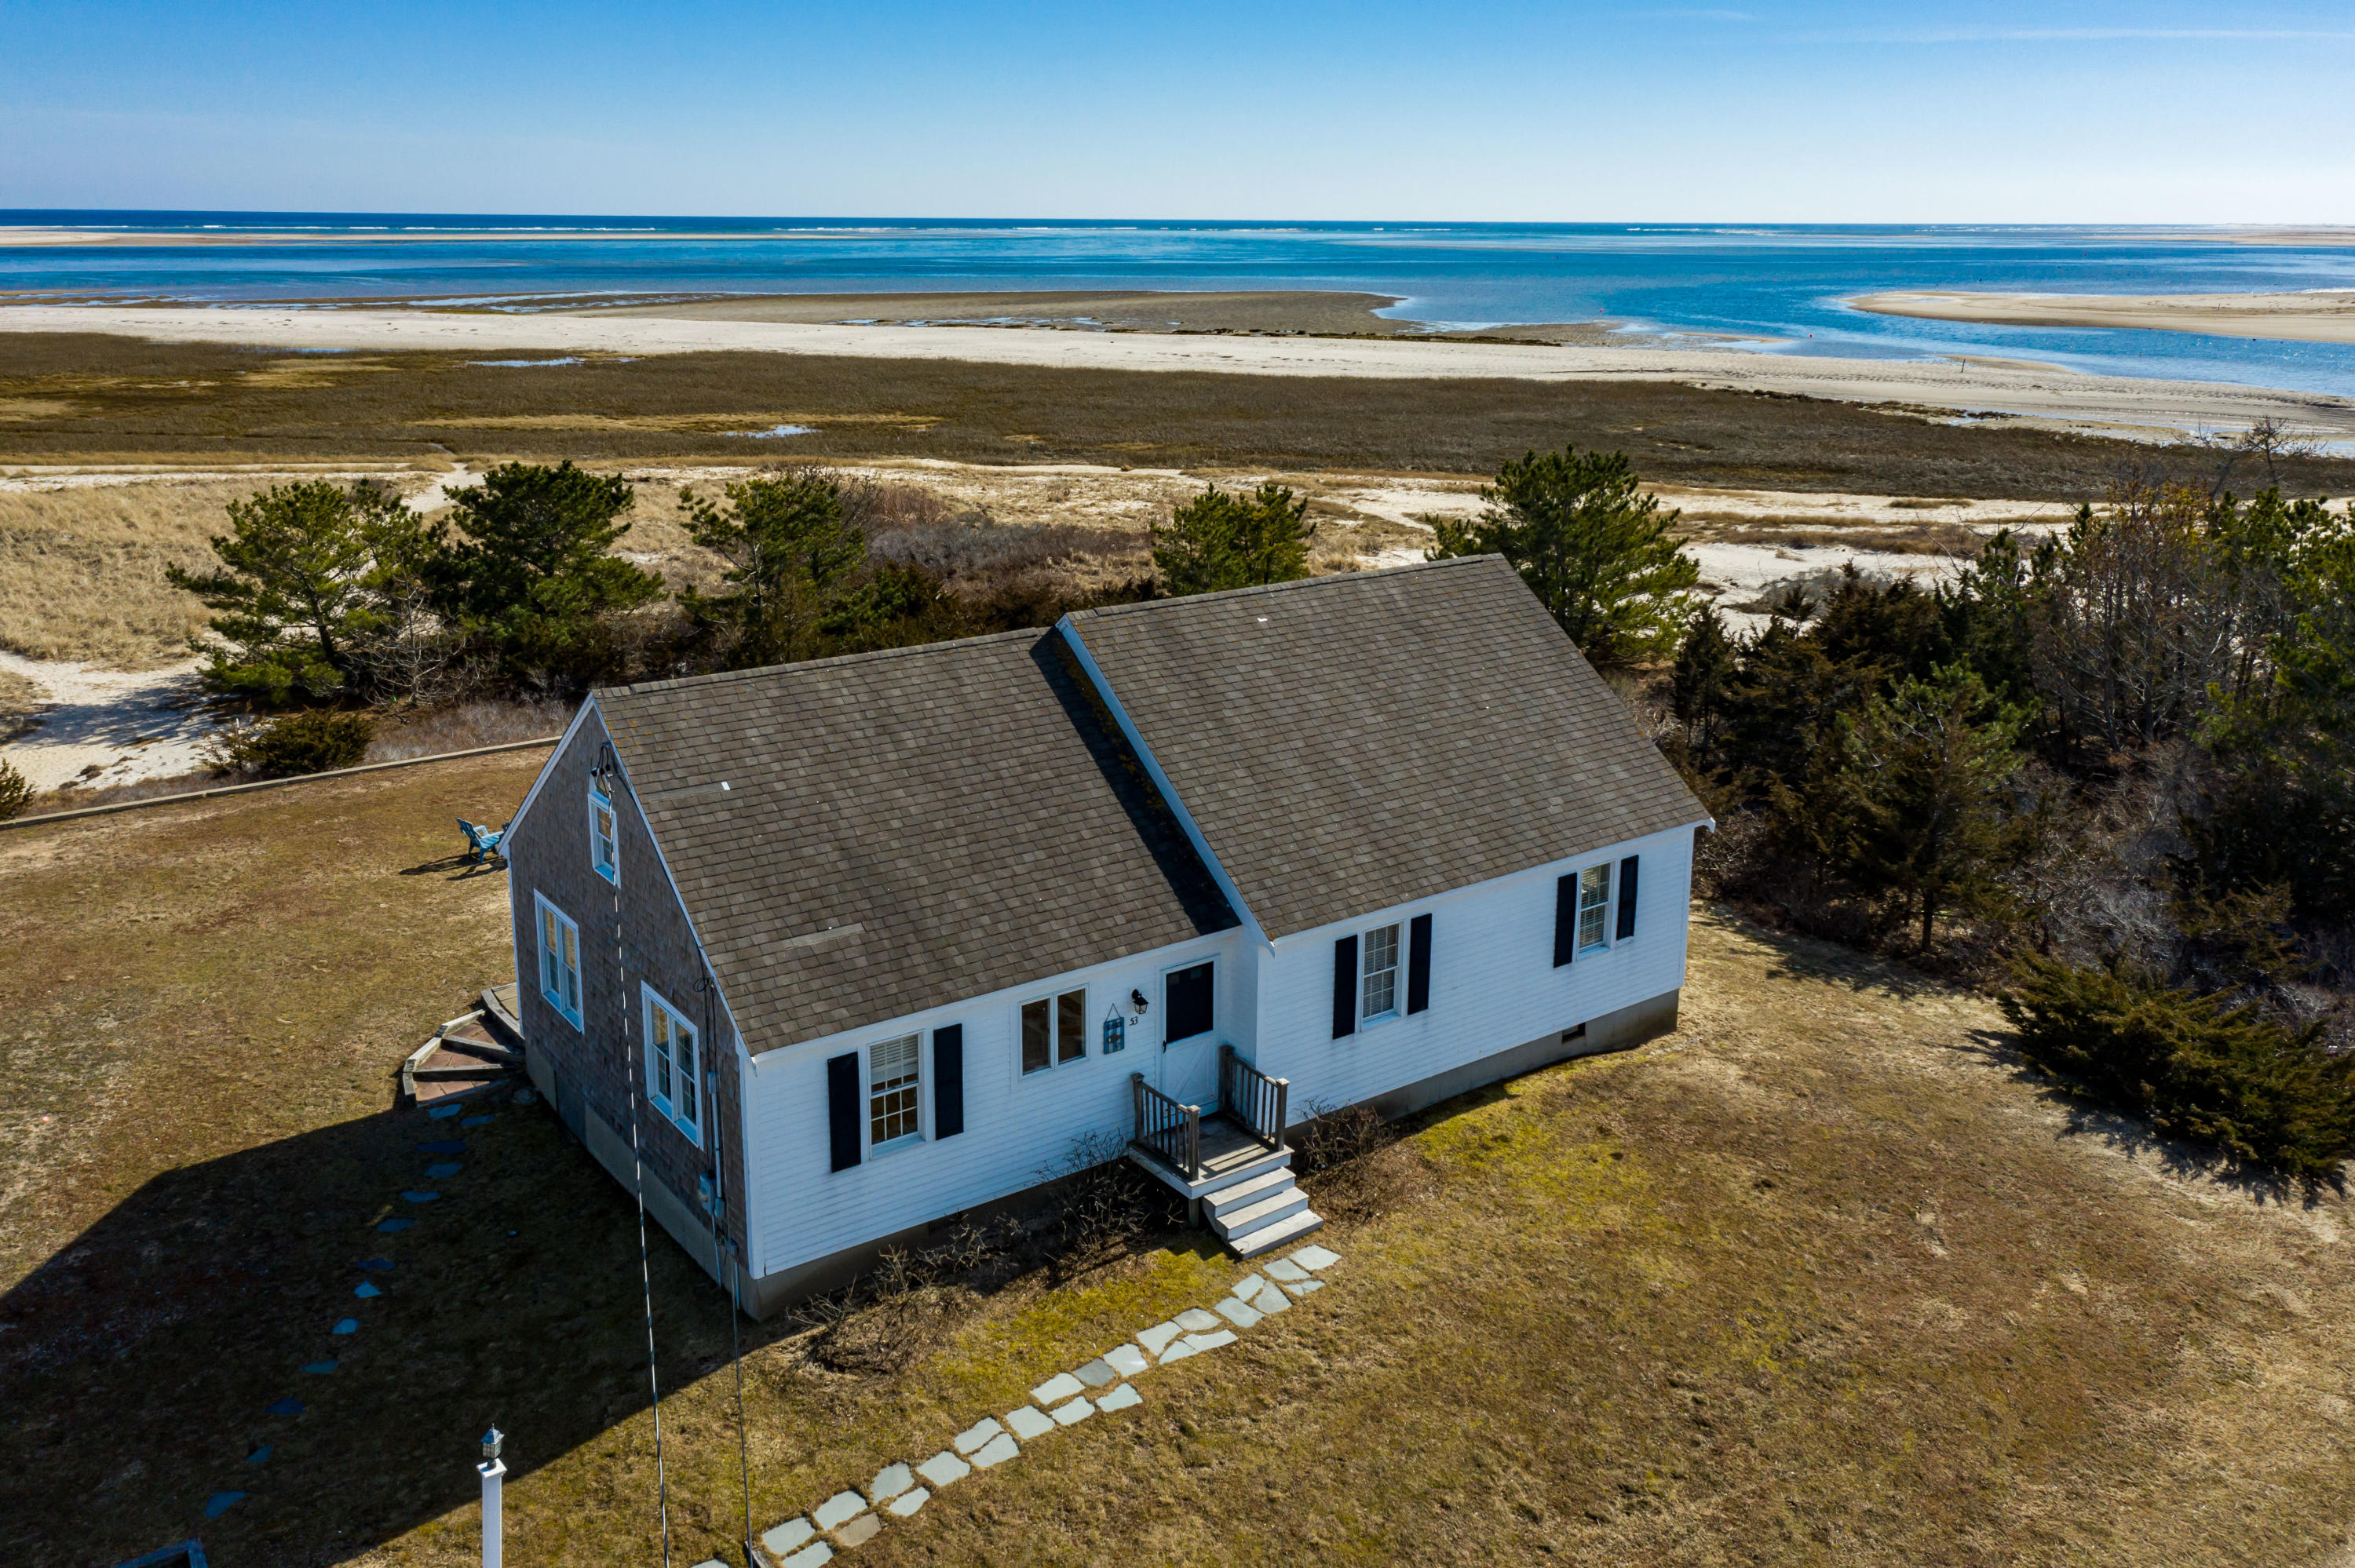 53 Little Beach Road, Chatham MA, 02633 details